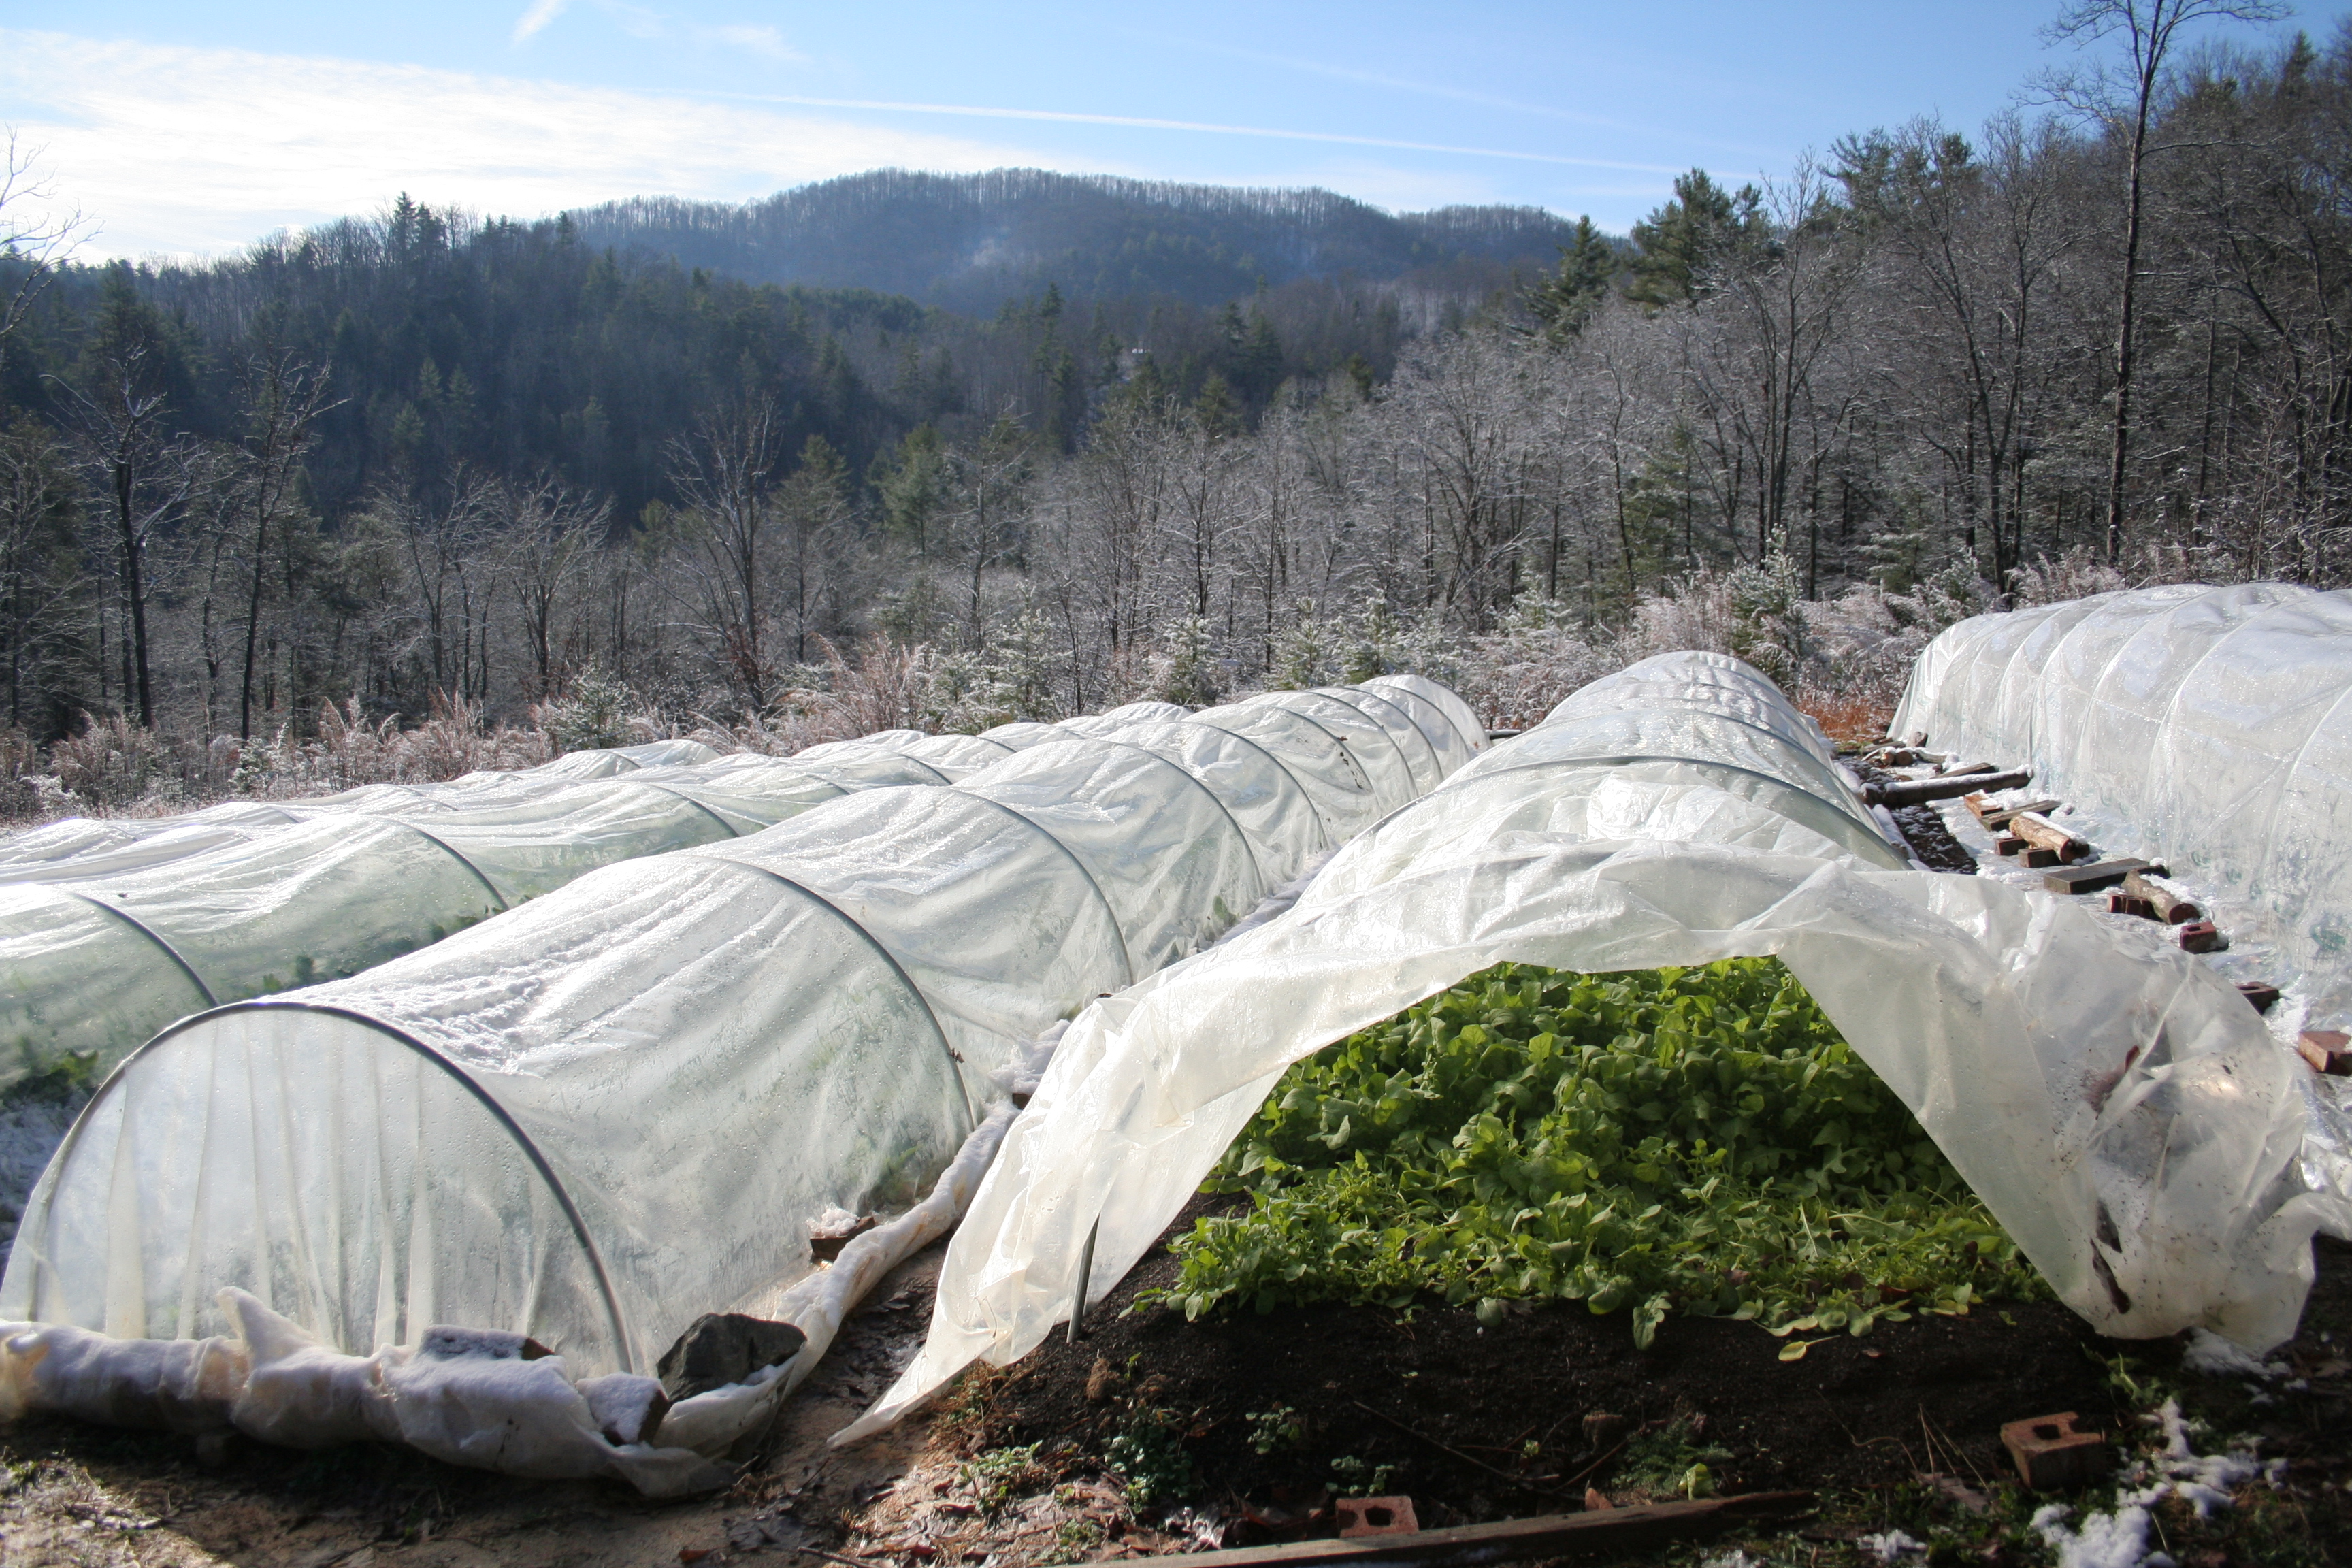 Protection Methods for Overwintering in Low Tunnels